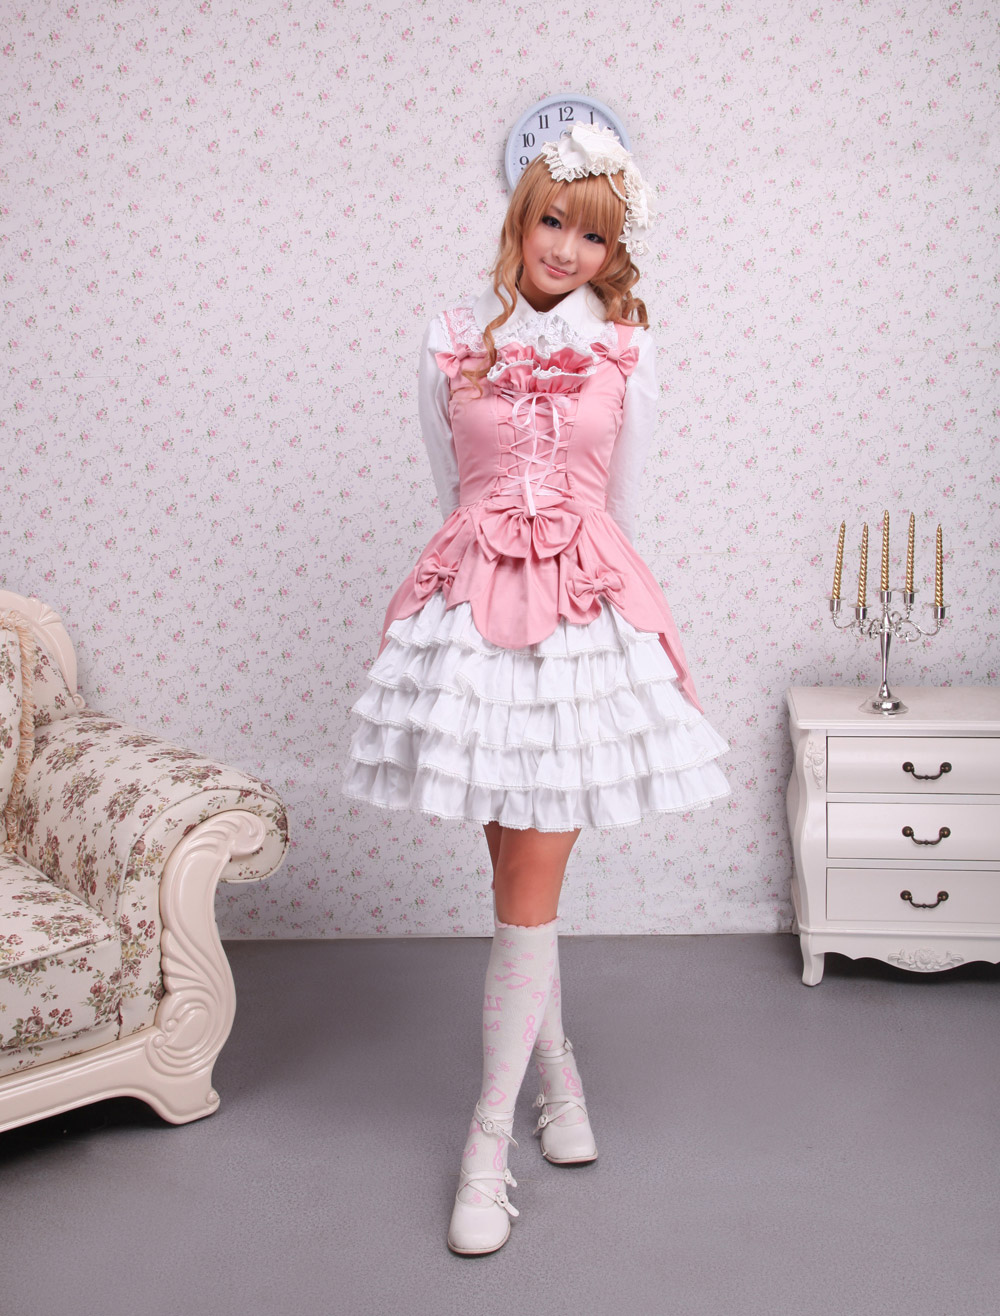 Buy Sweet Pink White Cotton Lolita Jumper Skirt Lace Up Layered Ruffles Bows for $71.99 in Milanoo store